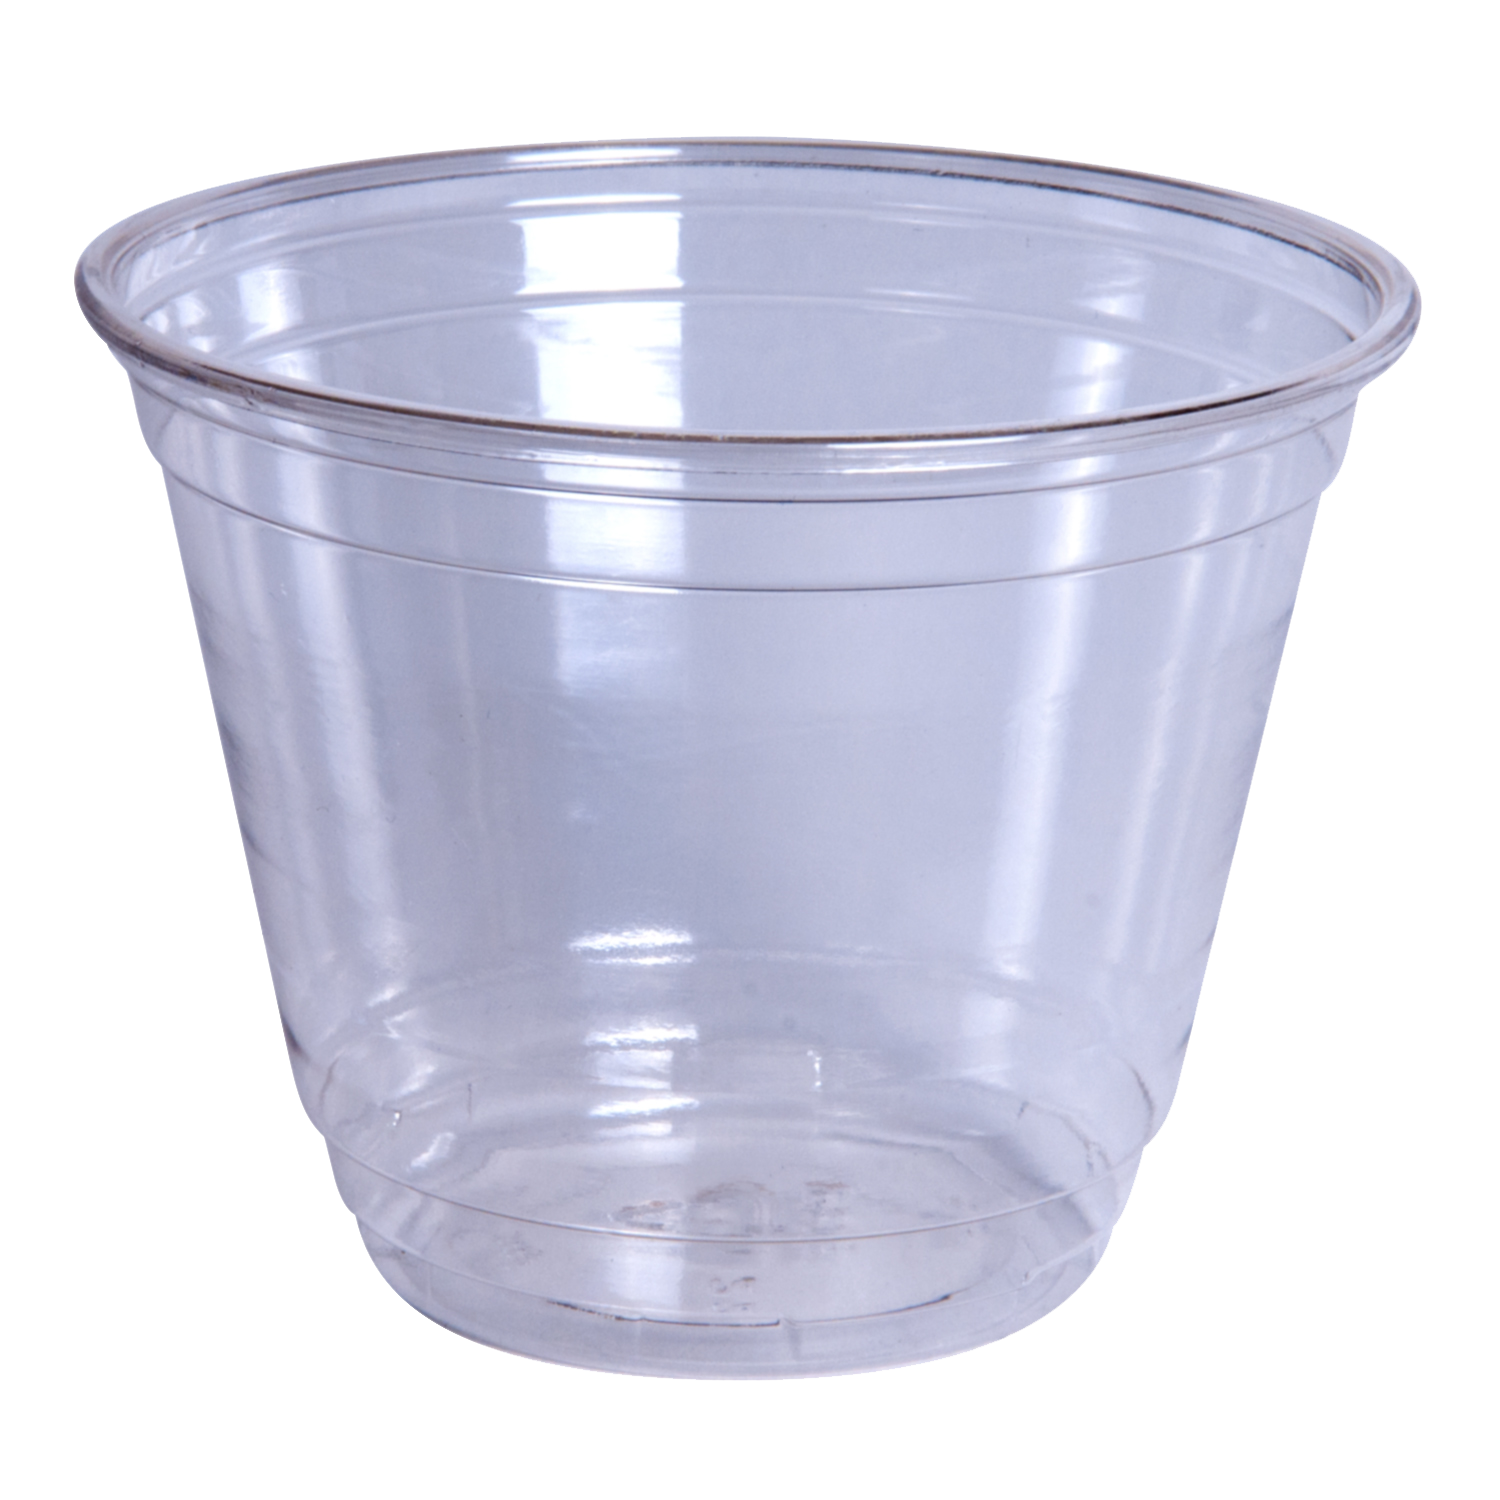 Plastic Cups With Lids : Plastic cups lids javapackaging canada